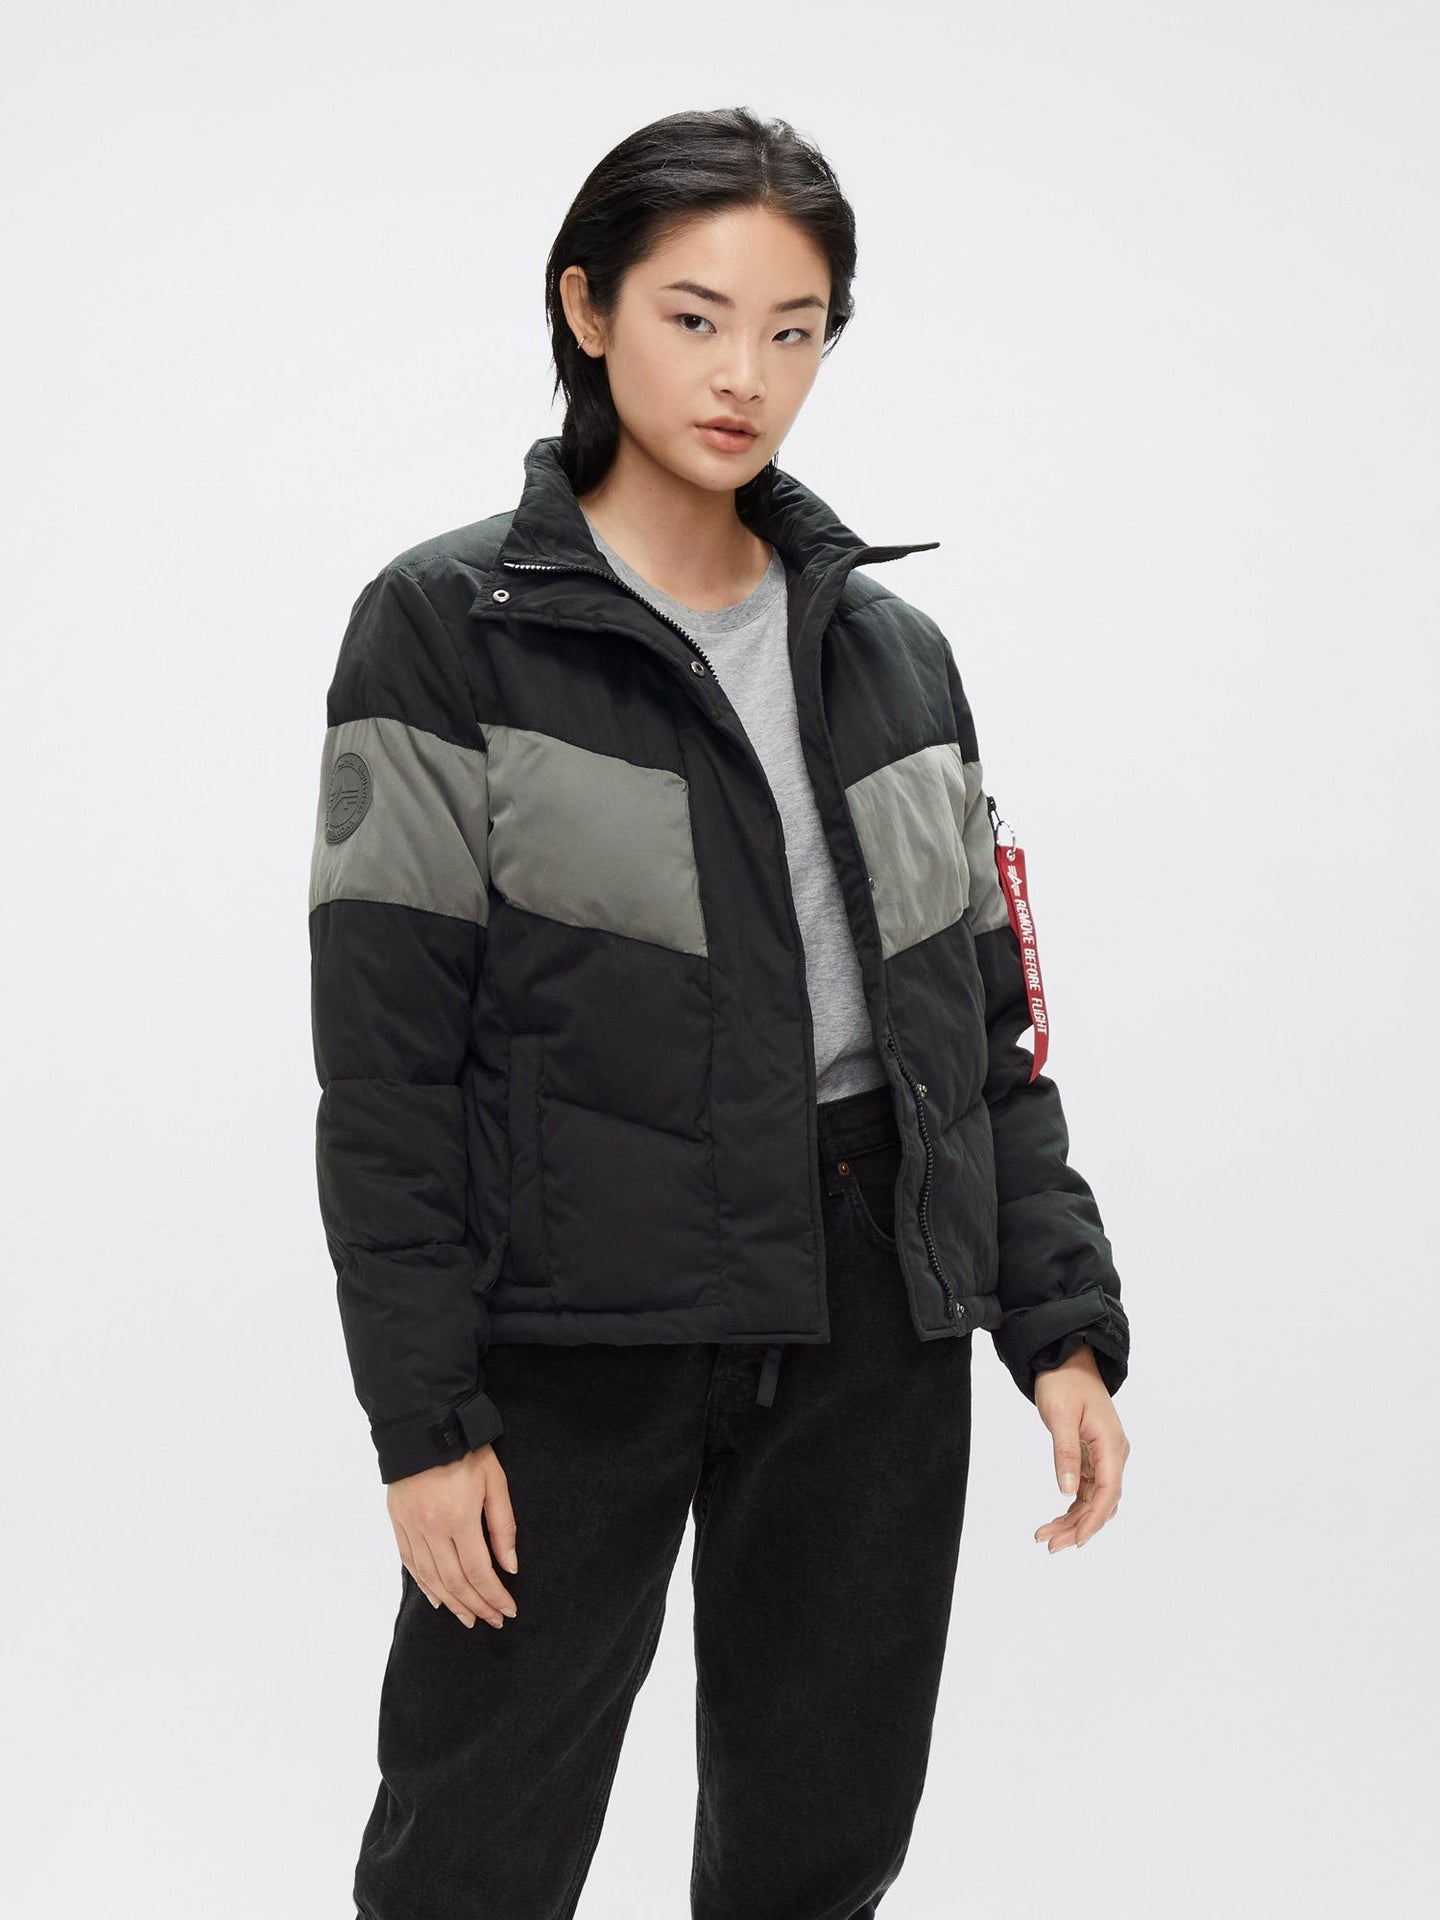 CHEVRON PUFFER PARKA W OUTERWEAR Alpha Industries, Inc. BLACK L